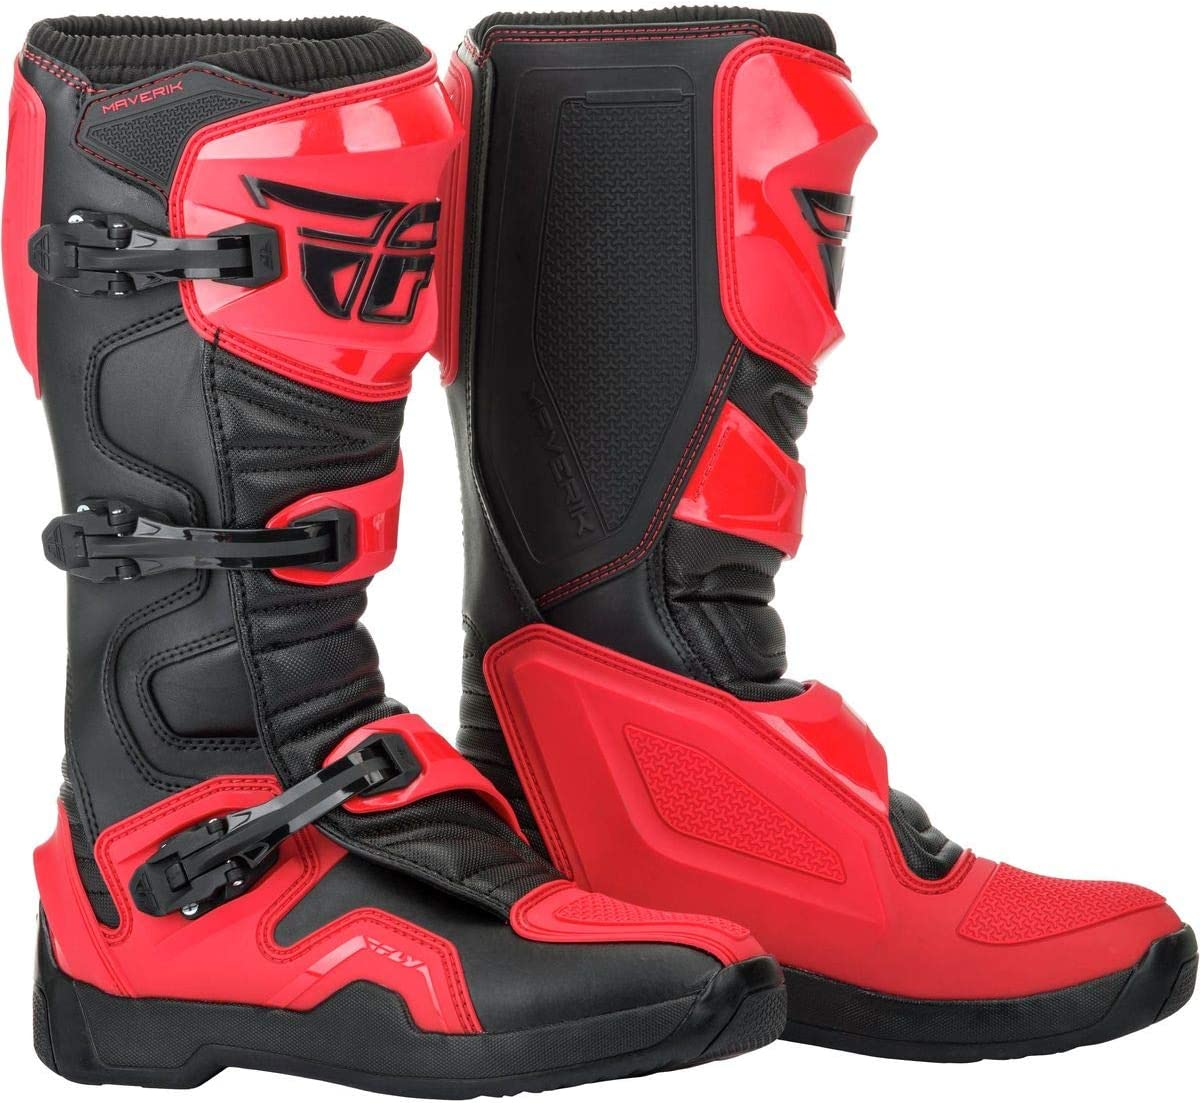 FLY Racing Maverik Boots for Motocross and ATV riding Off-road SZ 14,BLACK